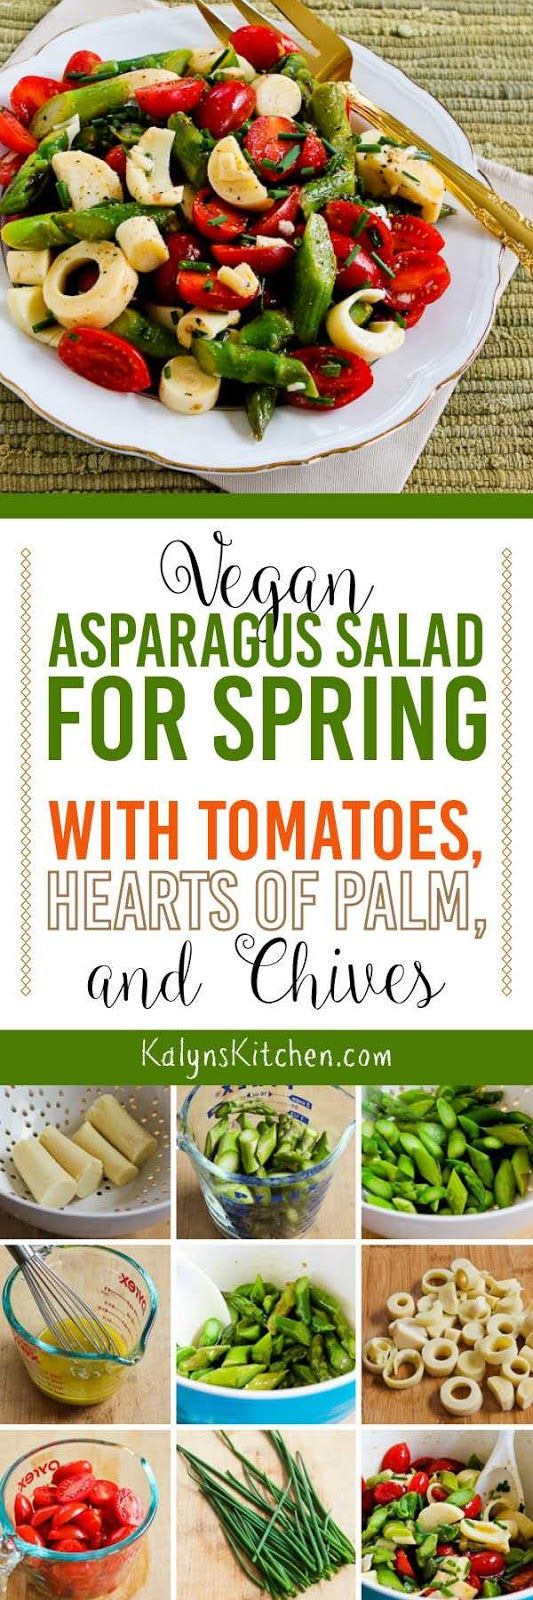 Asparagus fans will love this Vegan Asparagus Salad for Spring with Tomatoes, Hearts of Palm, and Chives and this tasty salad is also low-carb, low-glycemic, gluten-free, dairy-free, paleo, Whole 30, and South Beach Diet friendly. [found on KalynsKitchen.com]